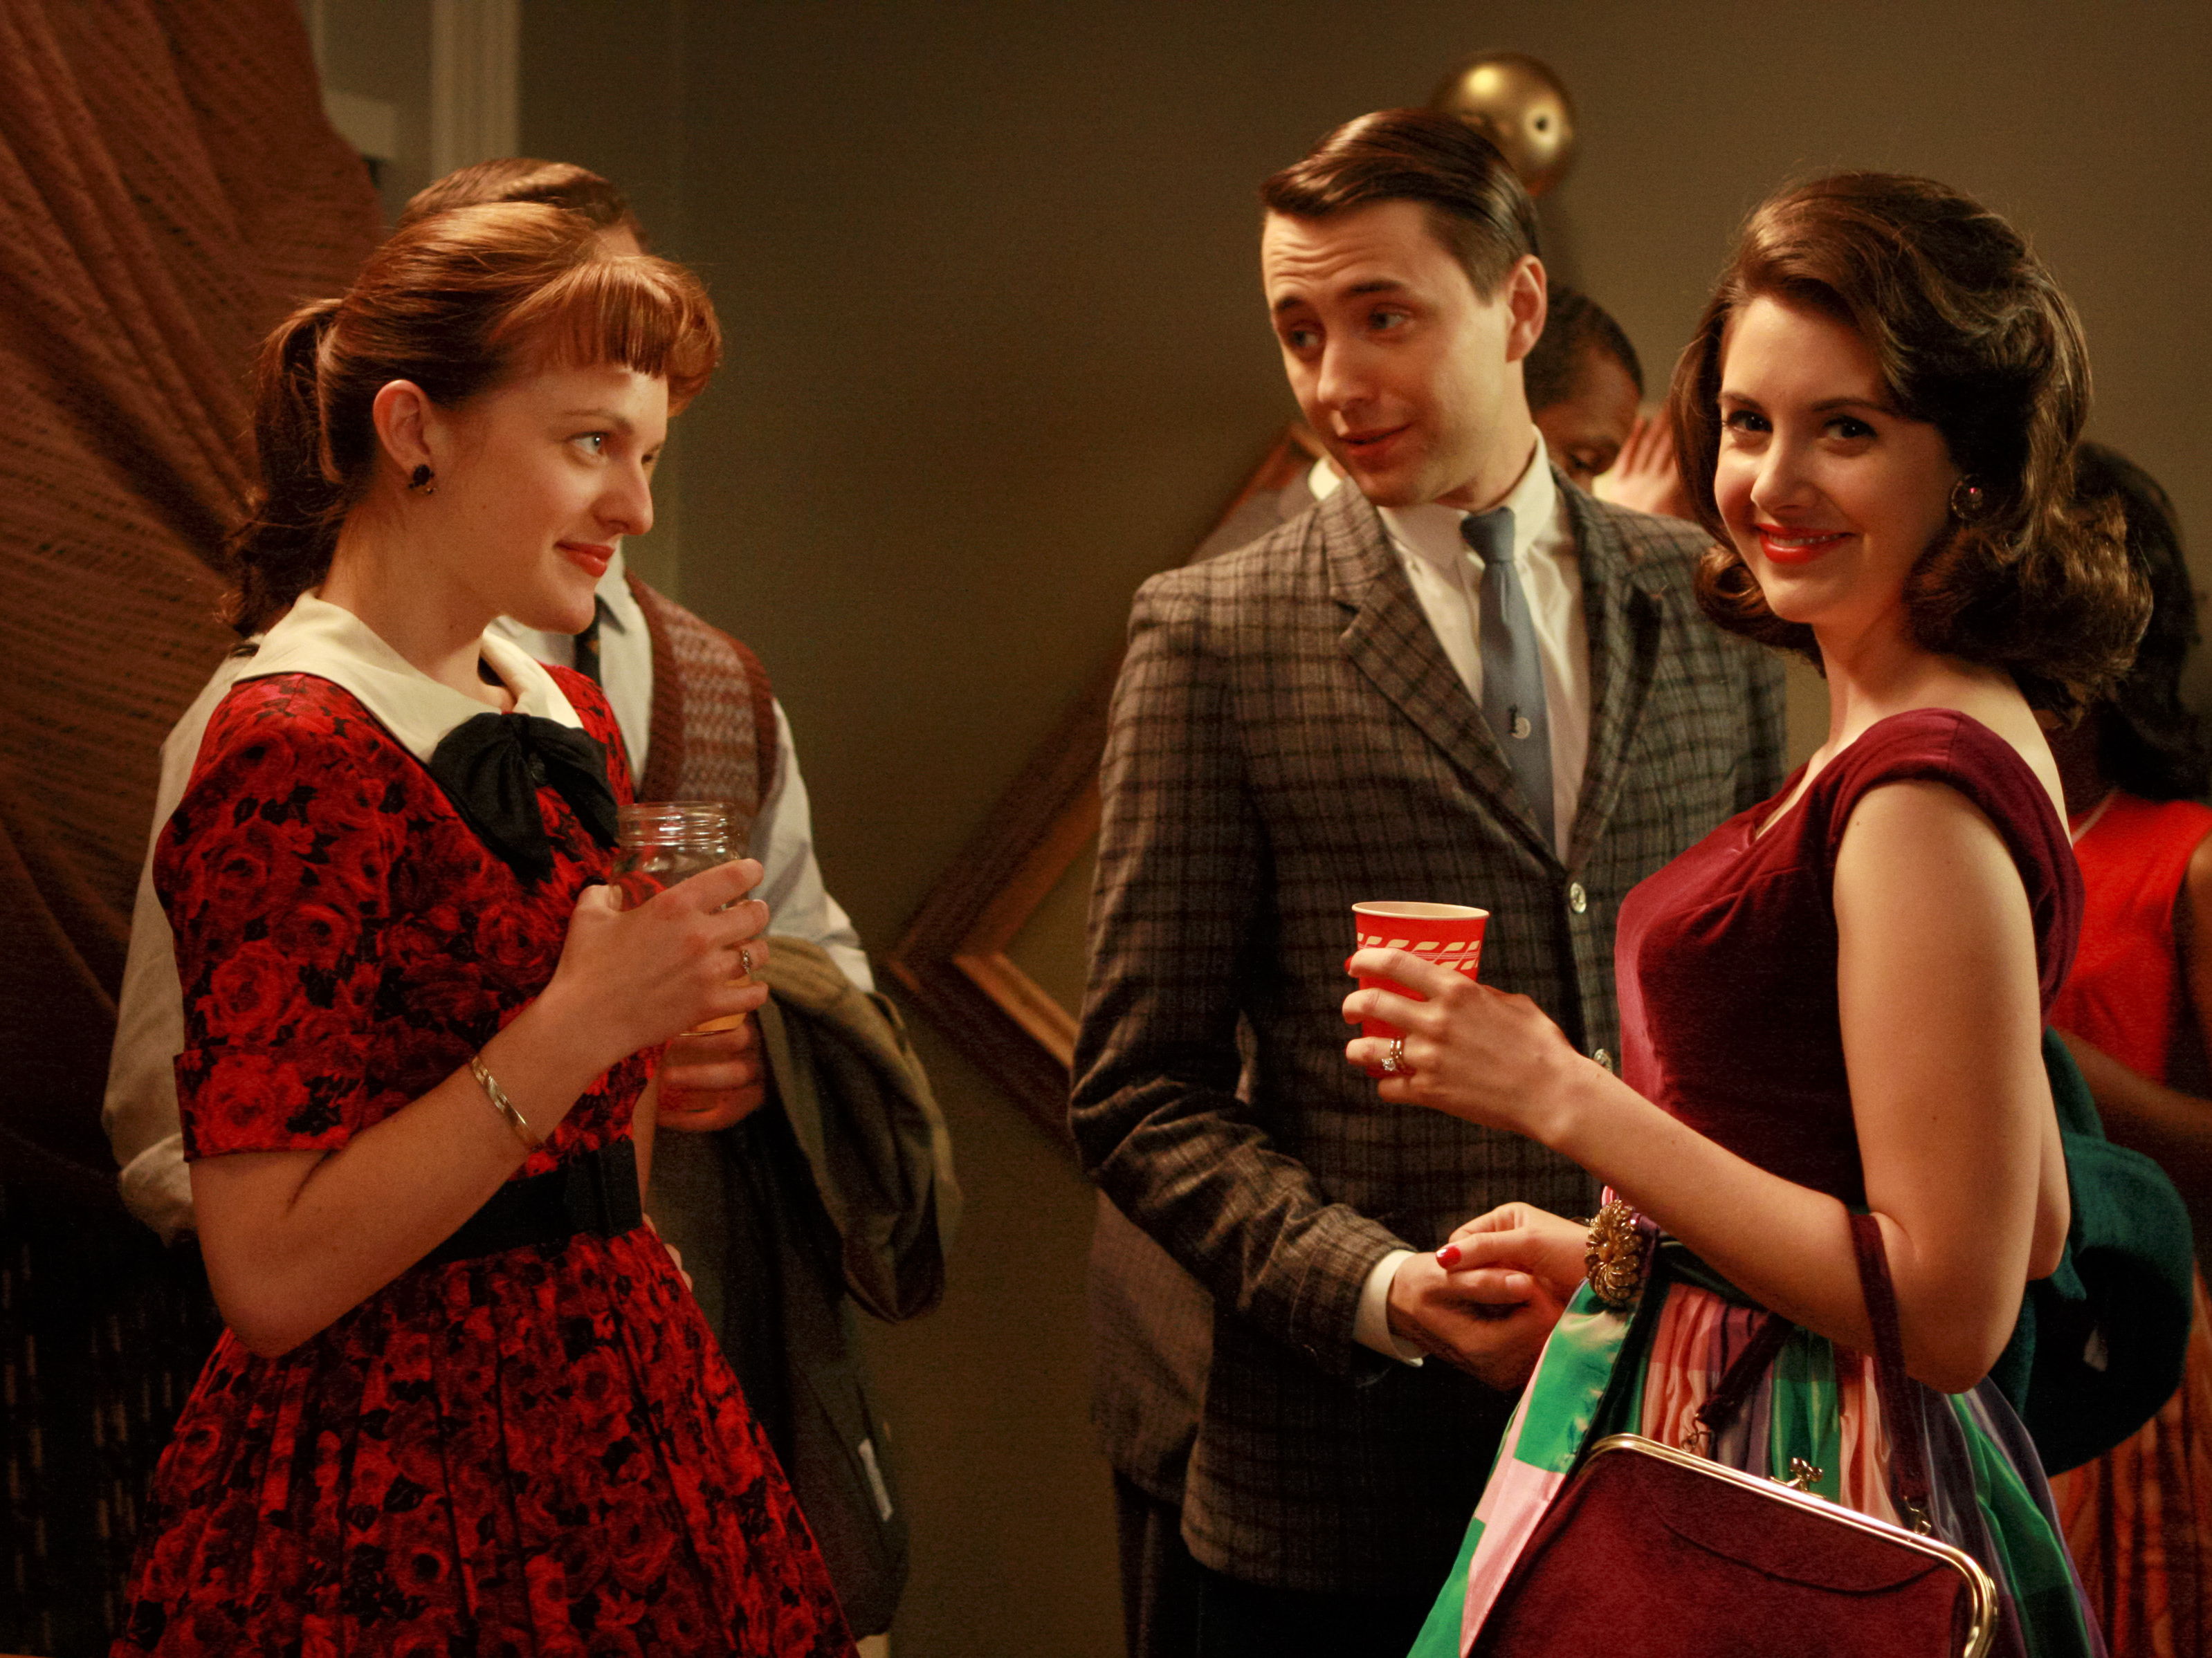 Alison Brie S Breakout Role On Mad Men Looked Like A Bit Part Npr Illinois